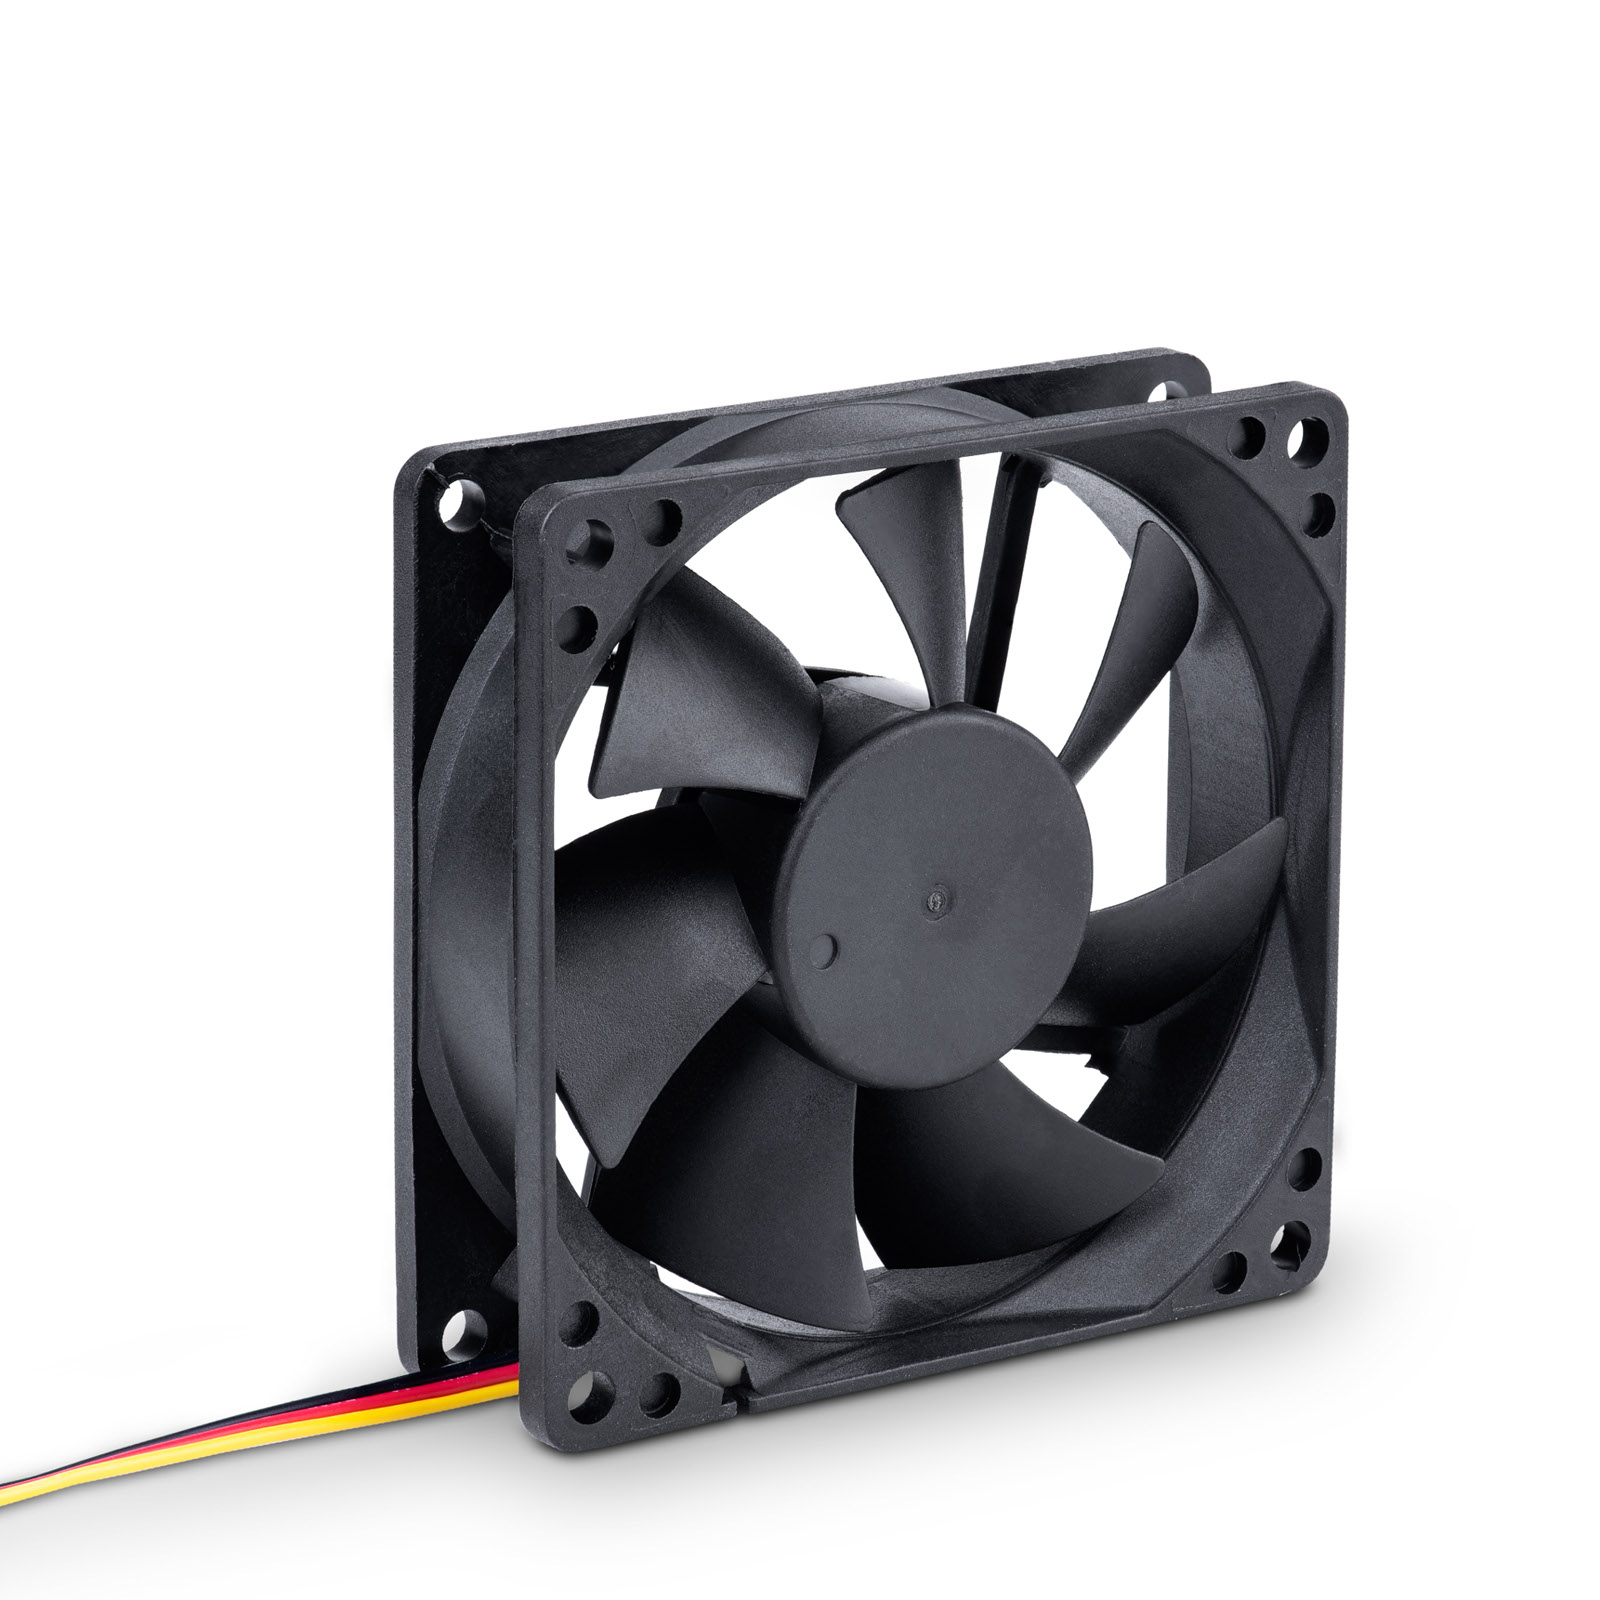 Main image Fan 80mm 3-pin black AW-8B-BK